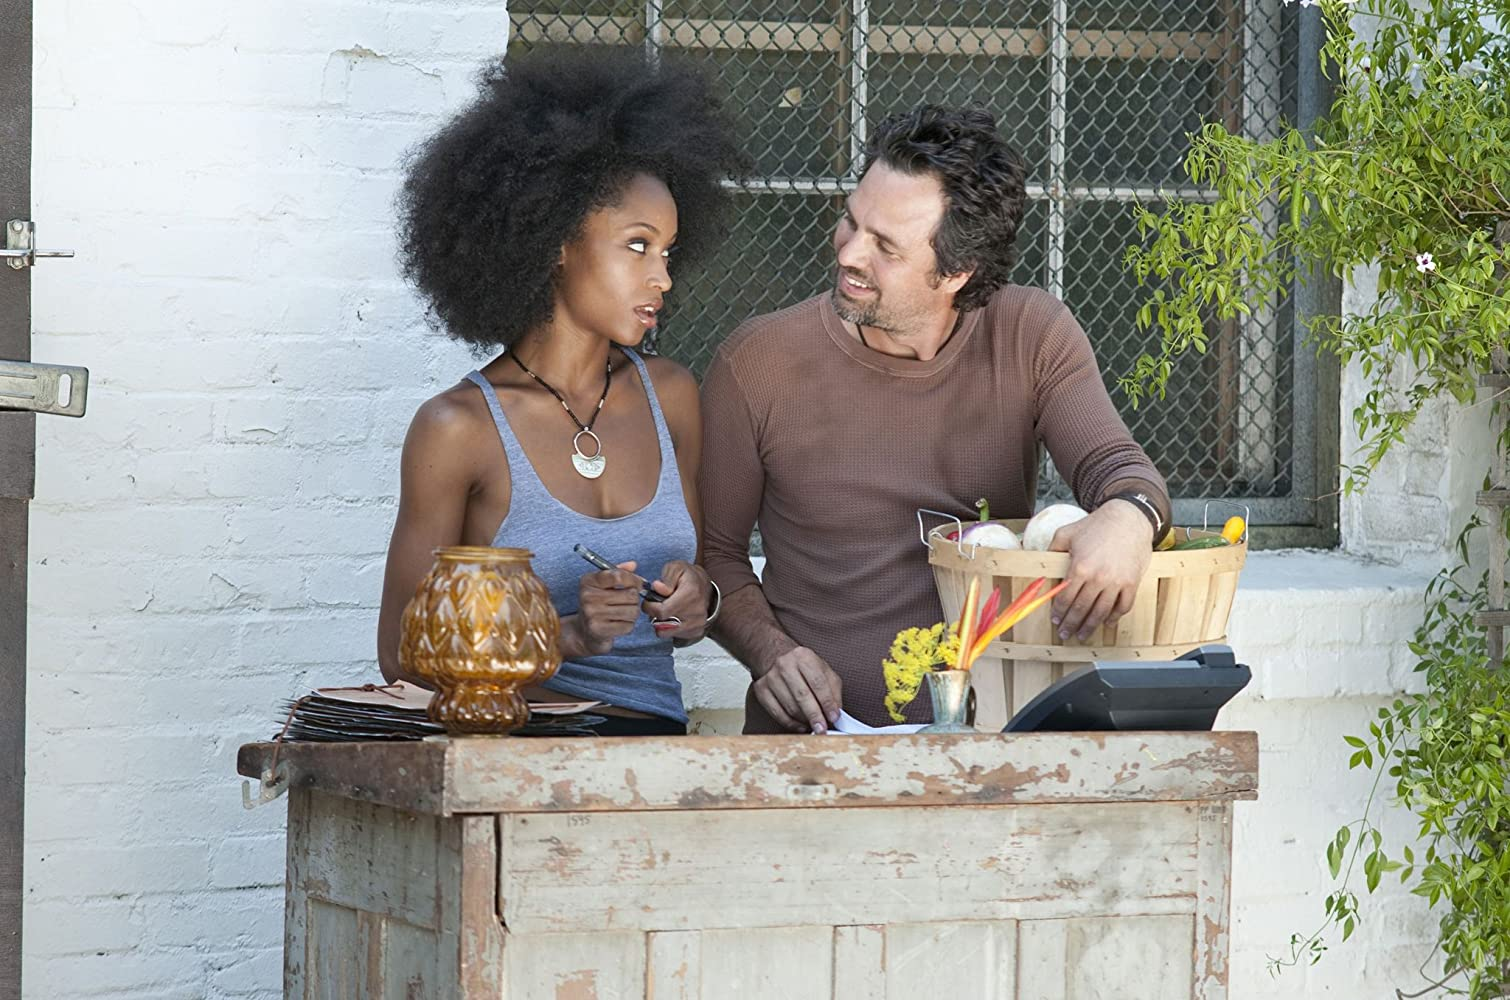 Mark Ruffalo and Yaya DaCosta in The Kids Are All Right (2010)